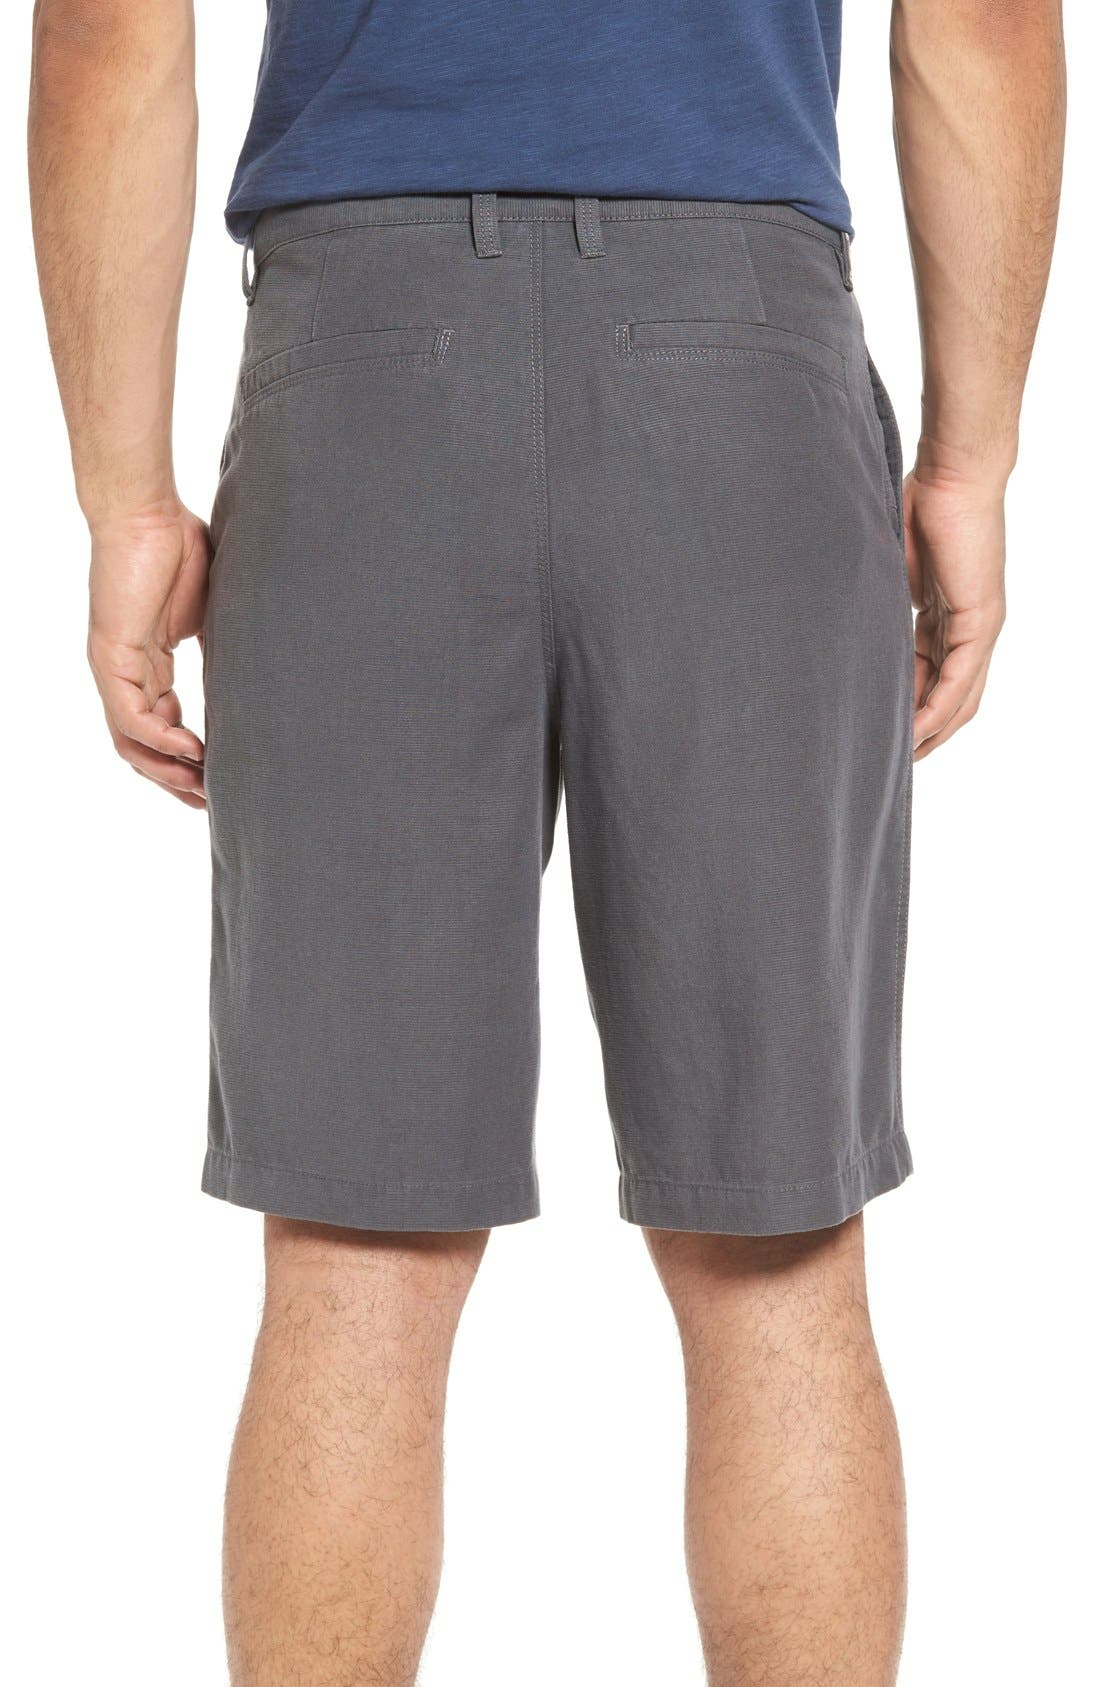 Alternate Image 2  - Tommy Bahama 'Surfclub' Shorts